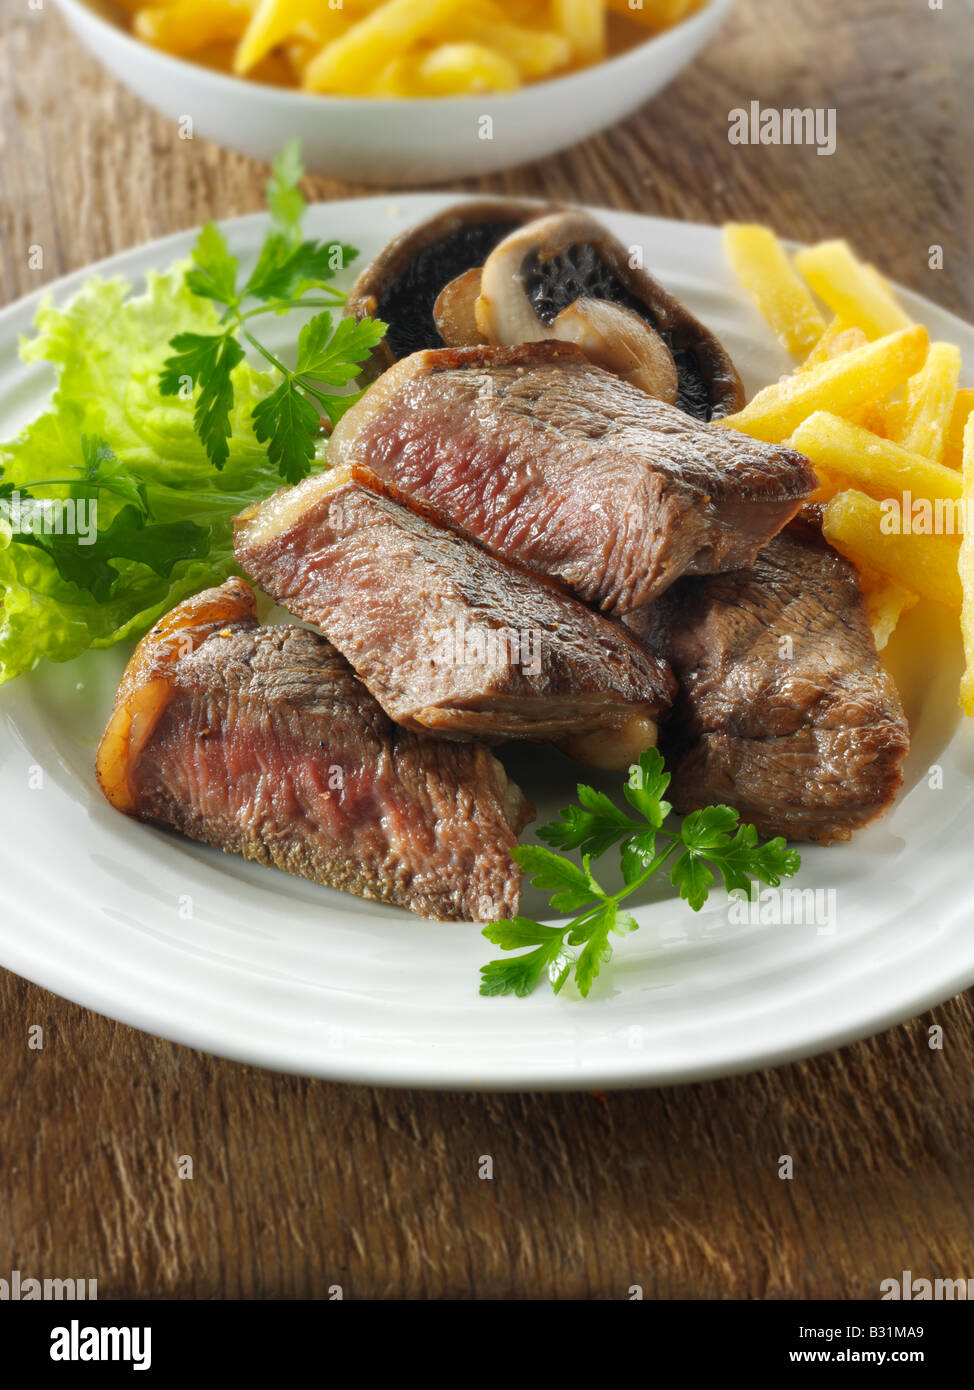 Sirloin Steak with Golden Onions